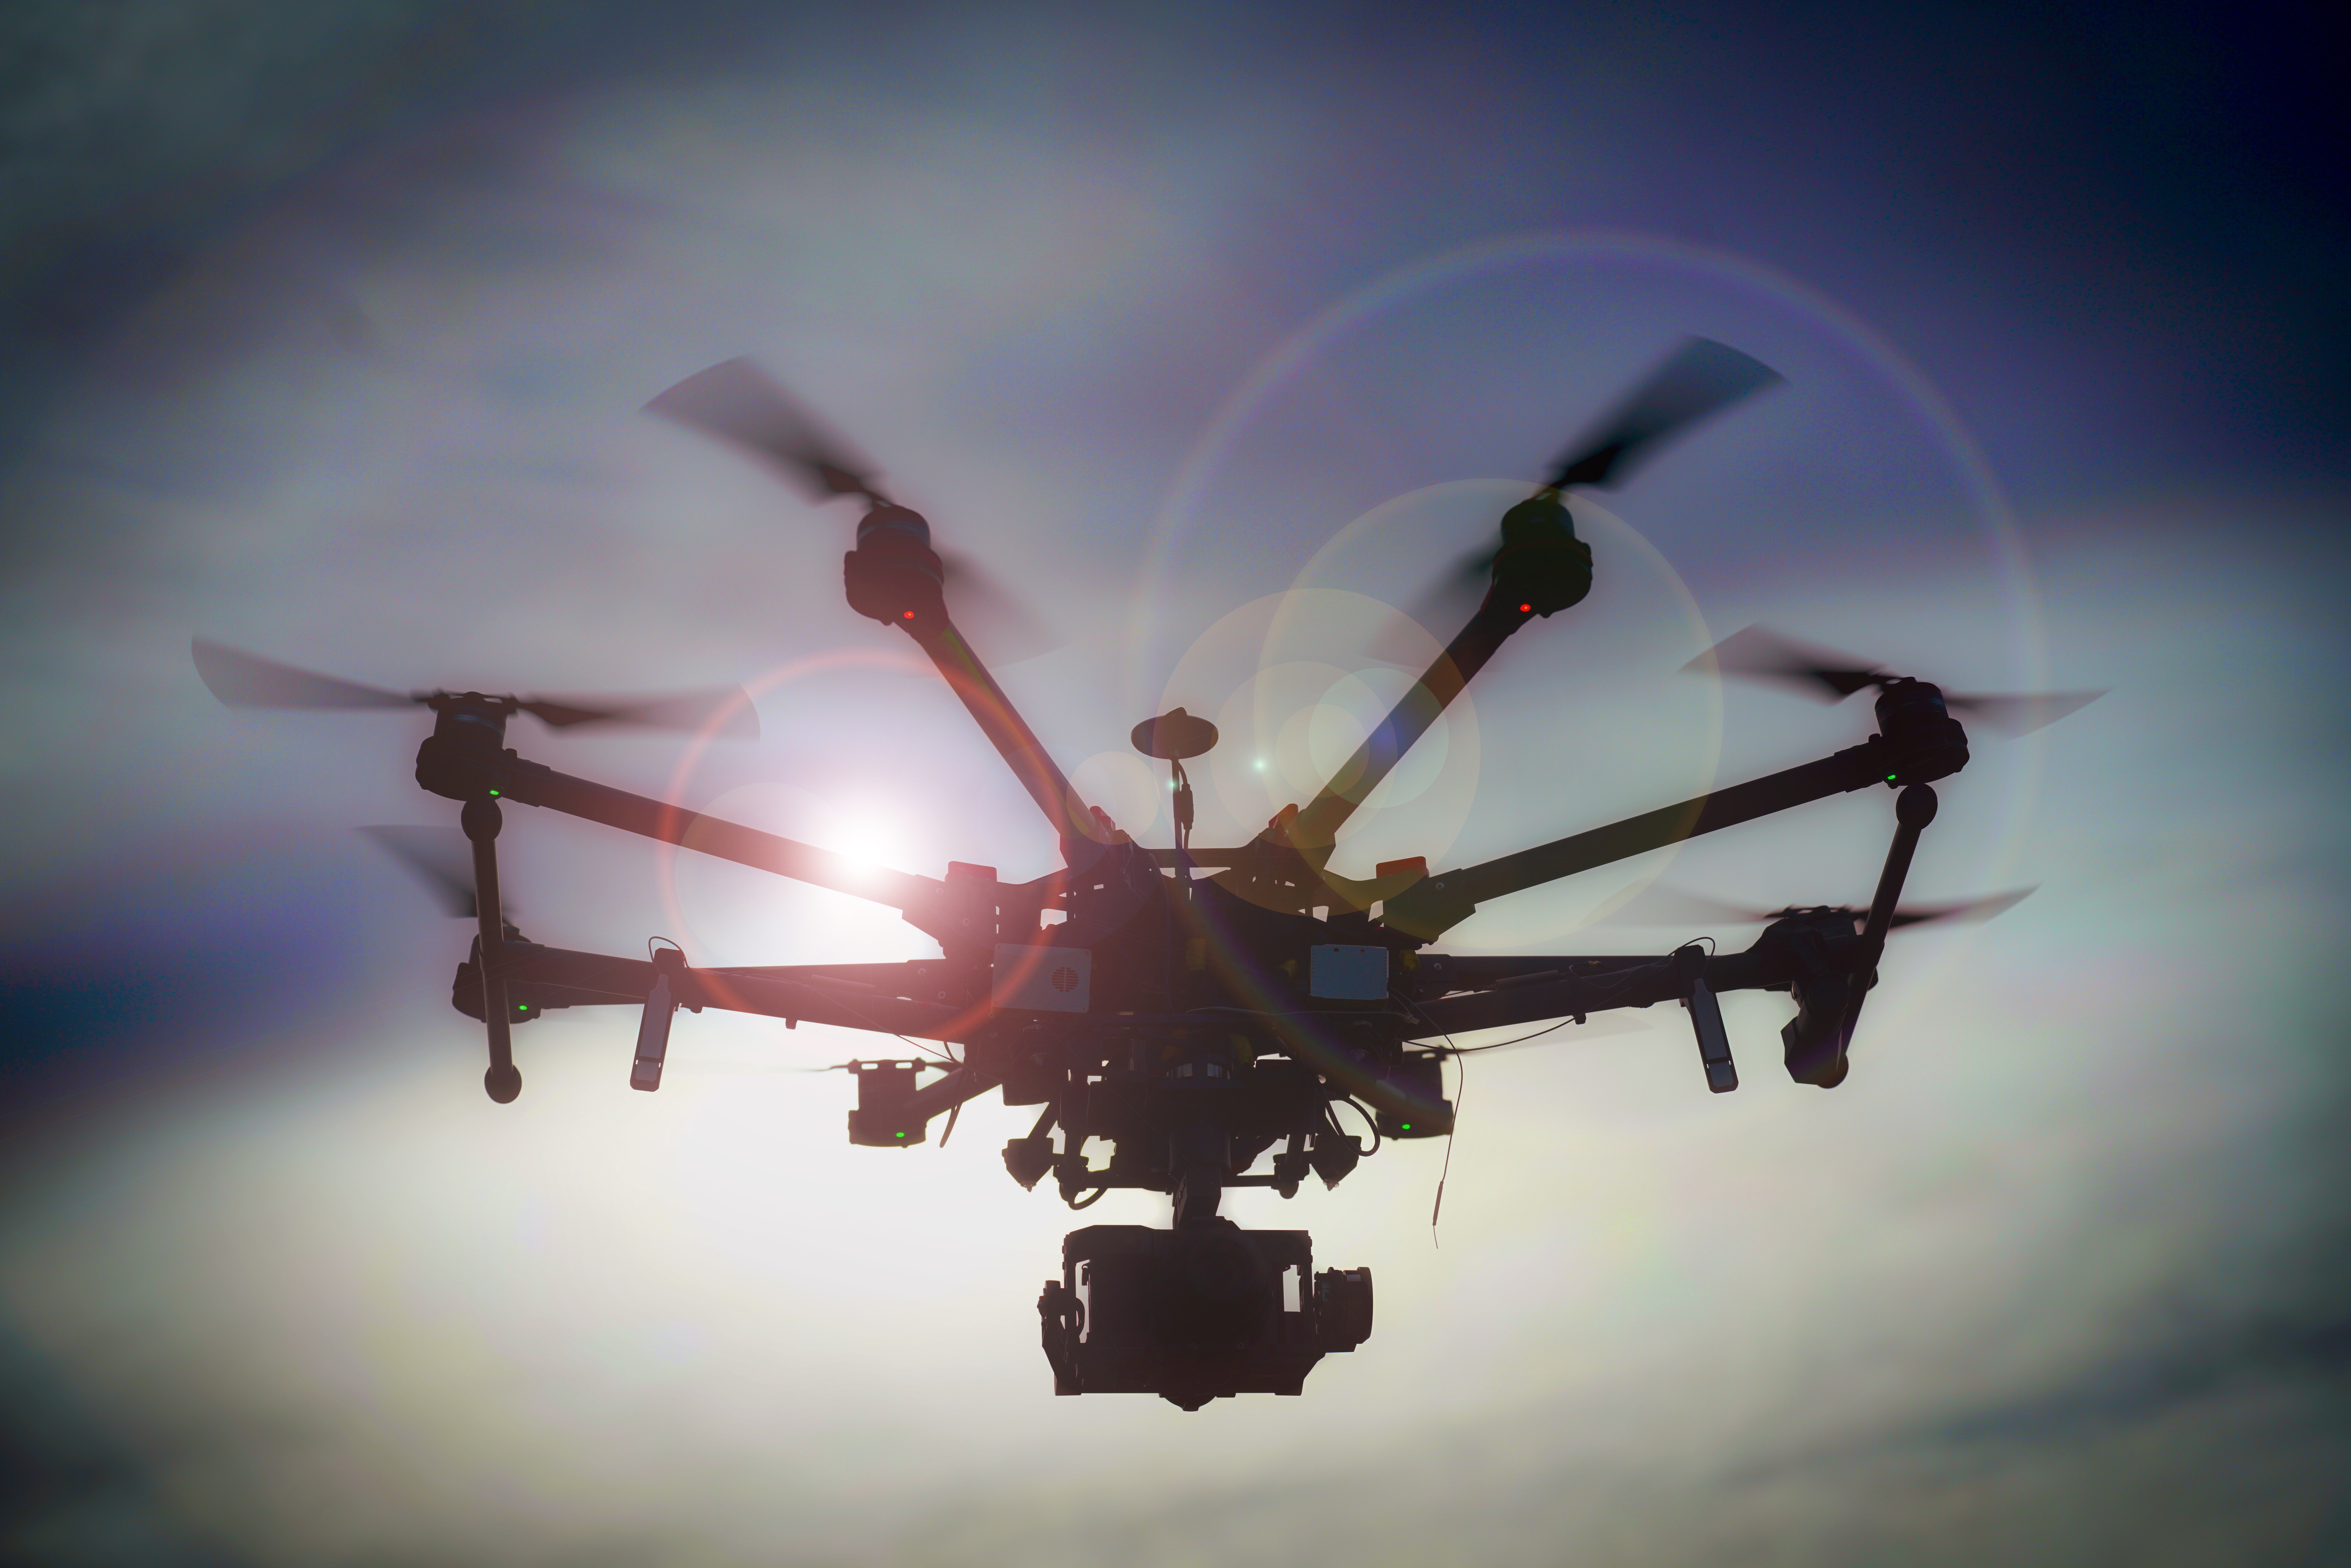 Naming your drone business: here are the most common drone company names